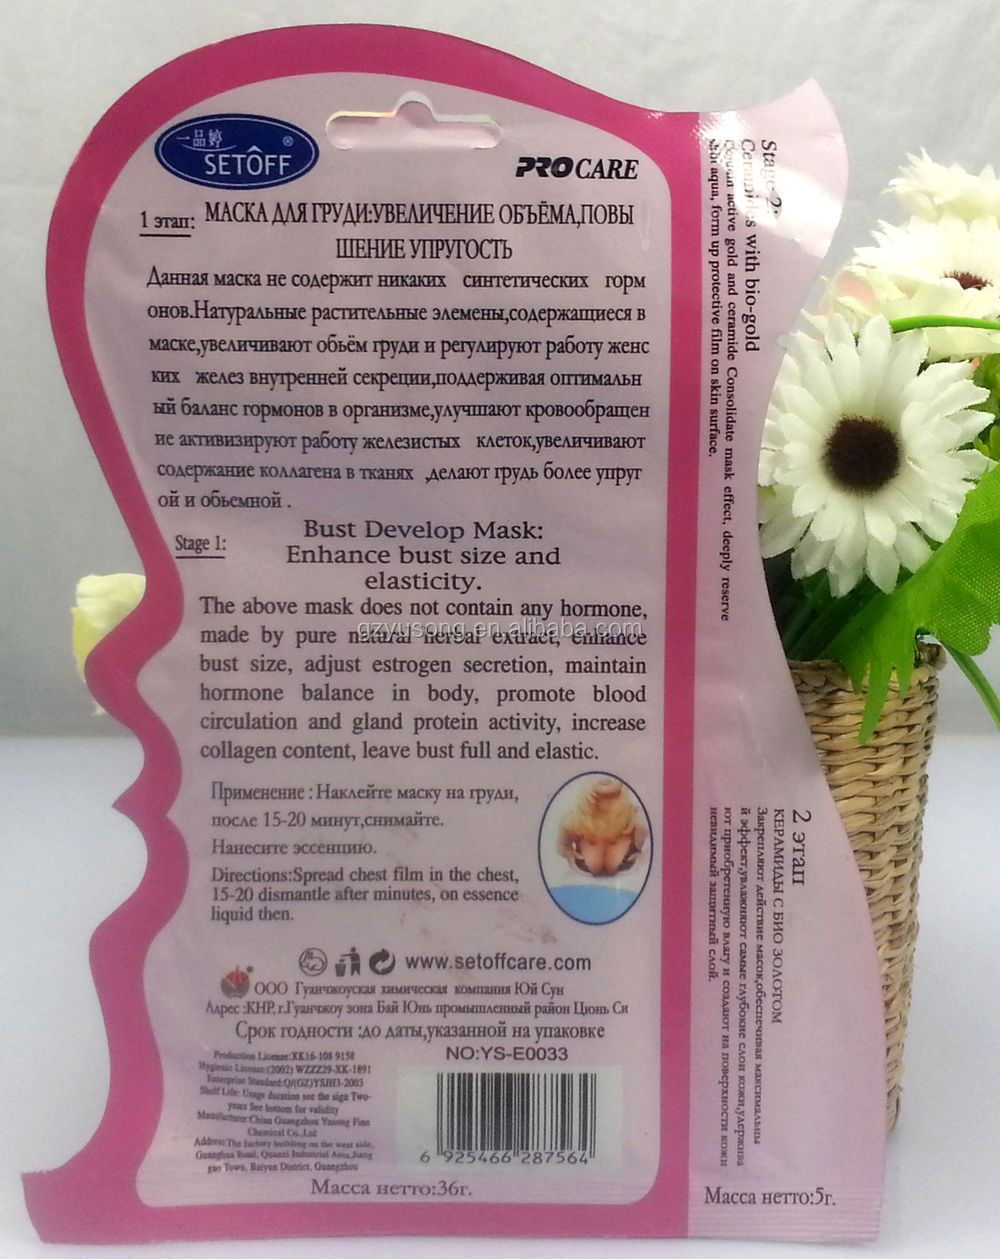 new from russia breast develop mask for oem